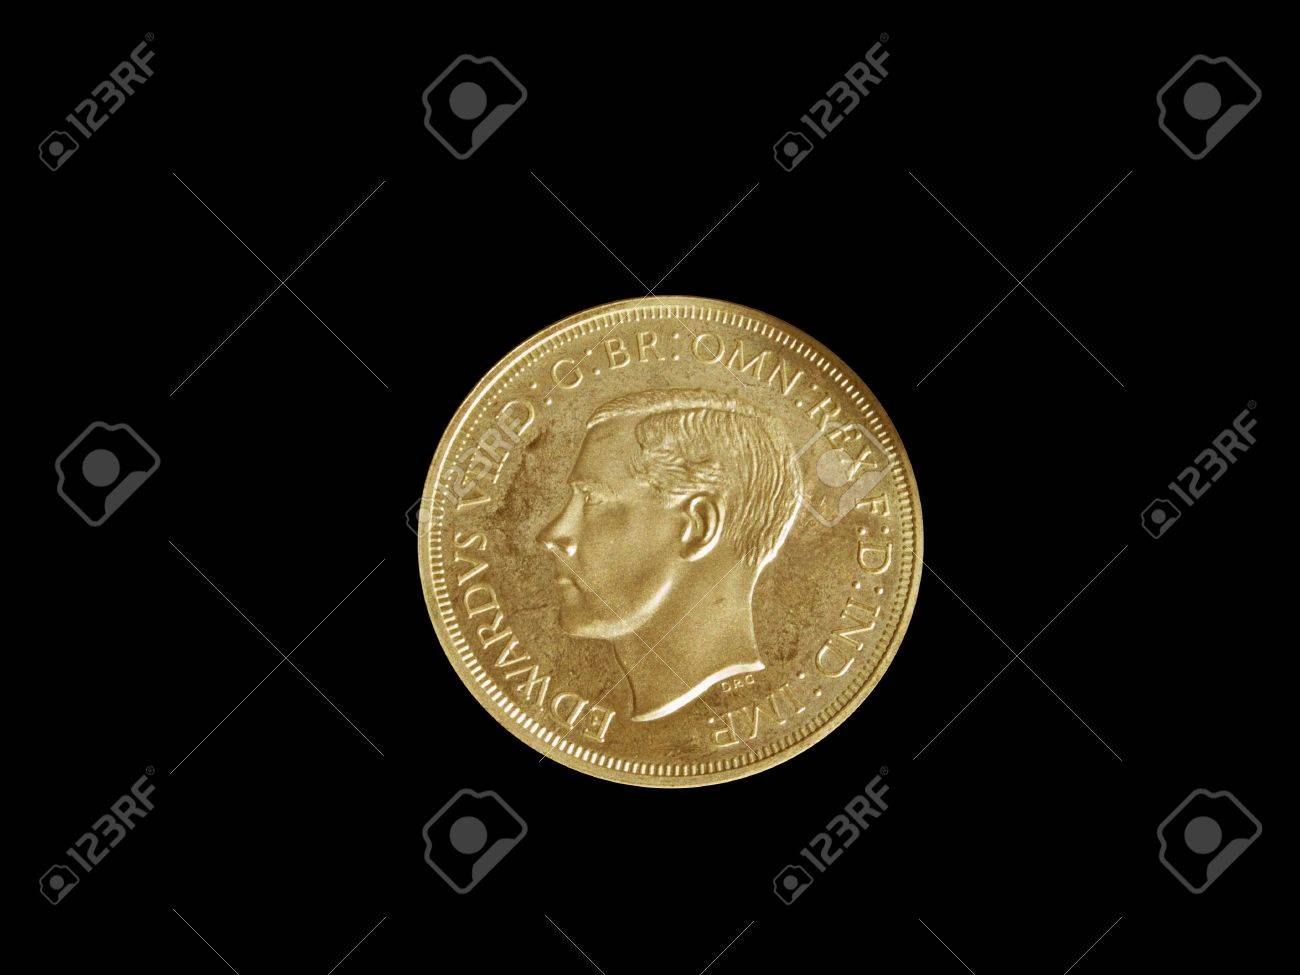 King Edward VIII coin isolated on a black background Stock Photo - 2830835